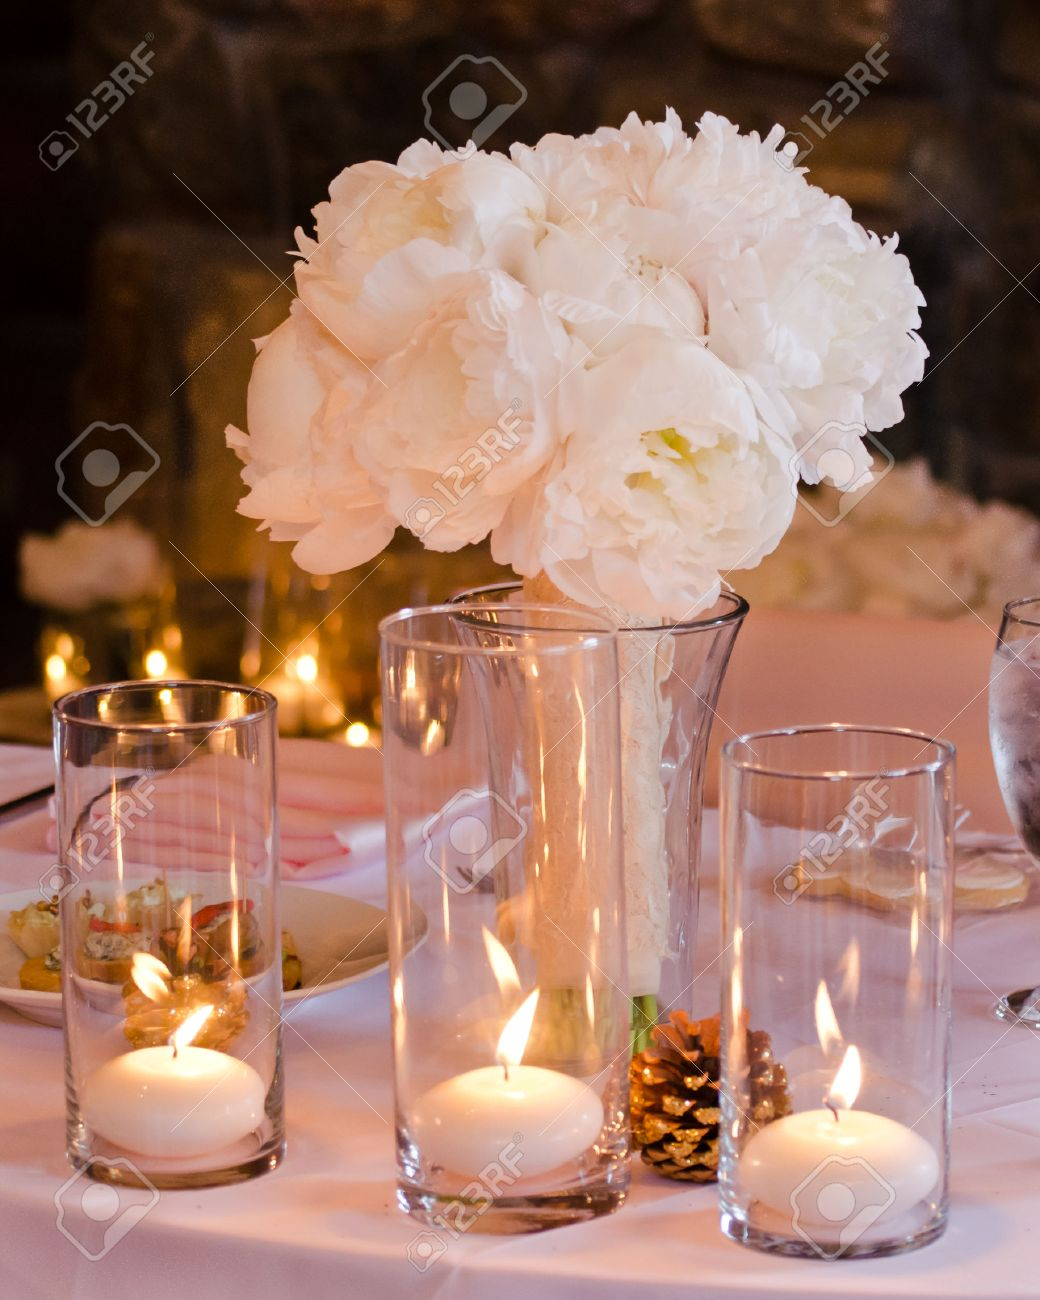 Pine Cone Candles White And Pink Peony Wedding Bouquet In A Vase Accented By Candles